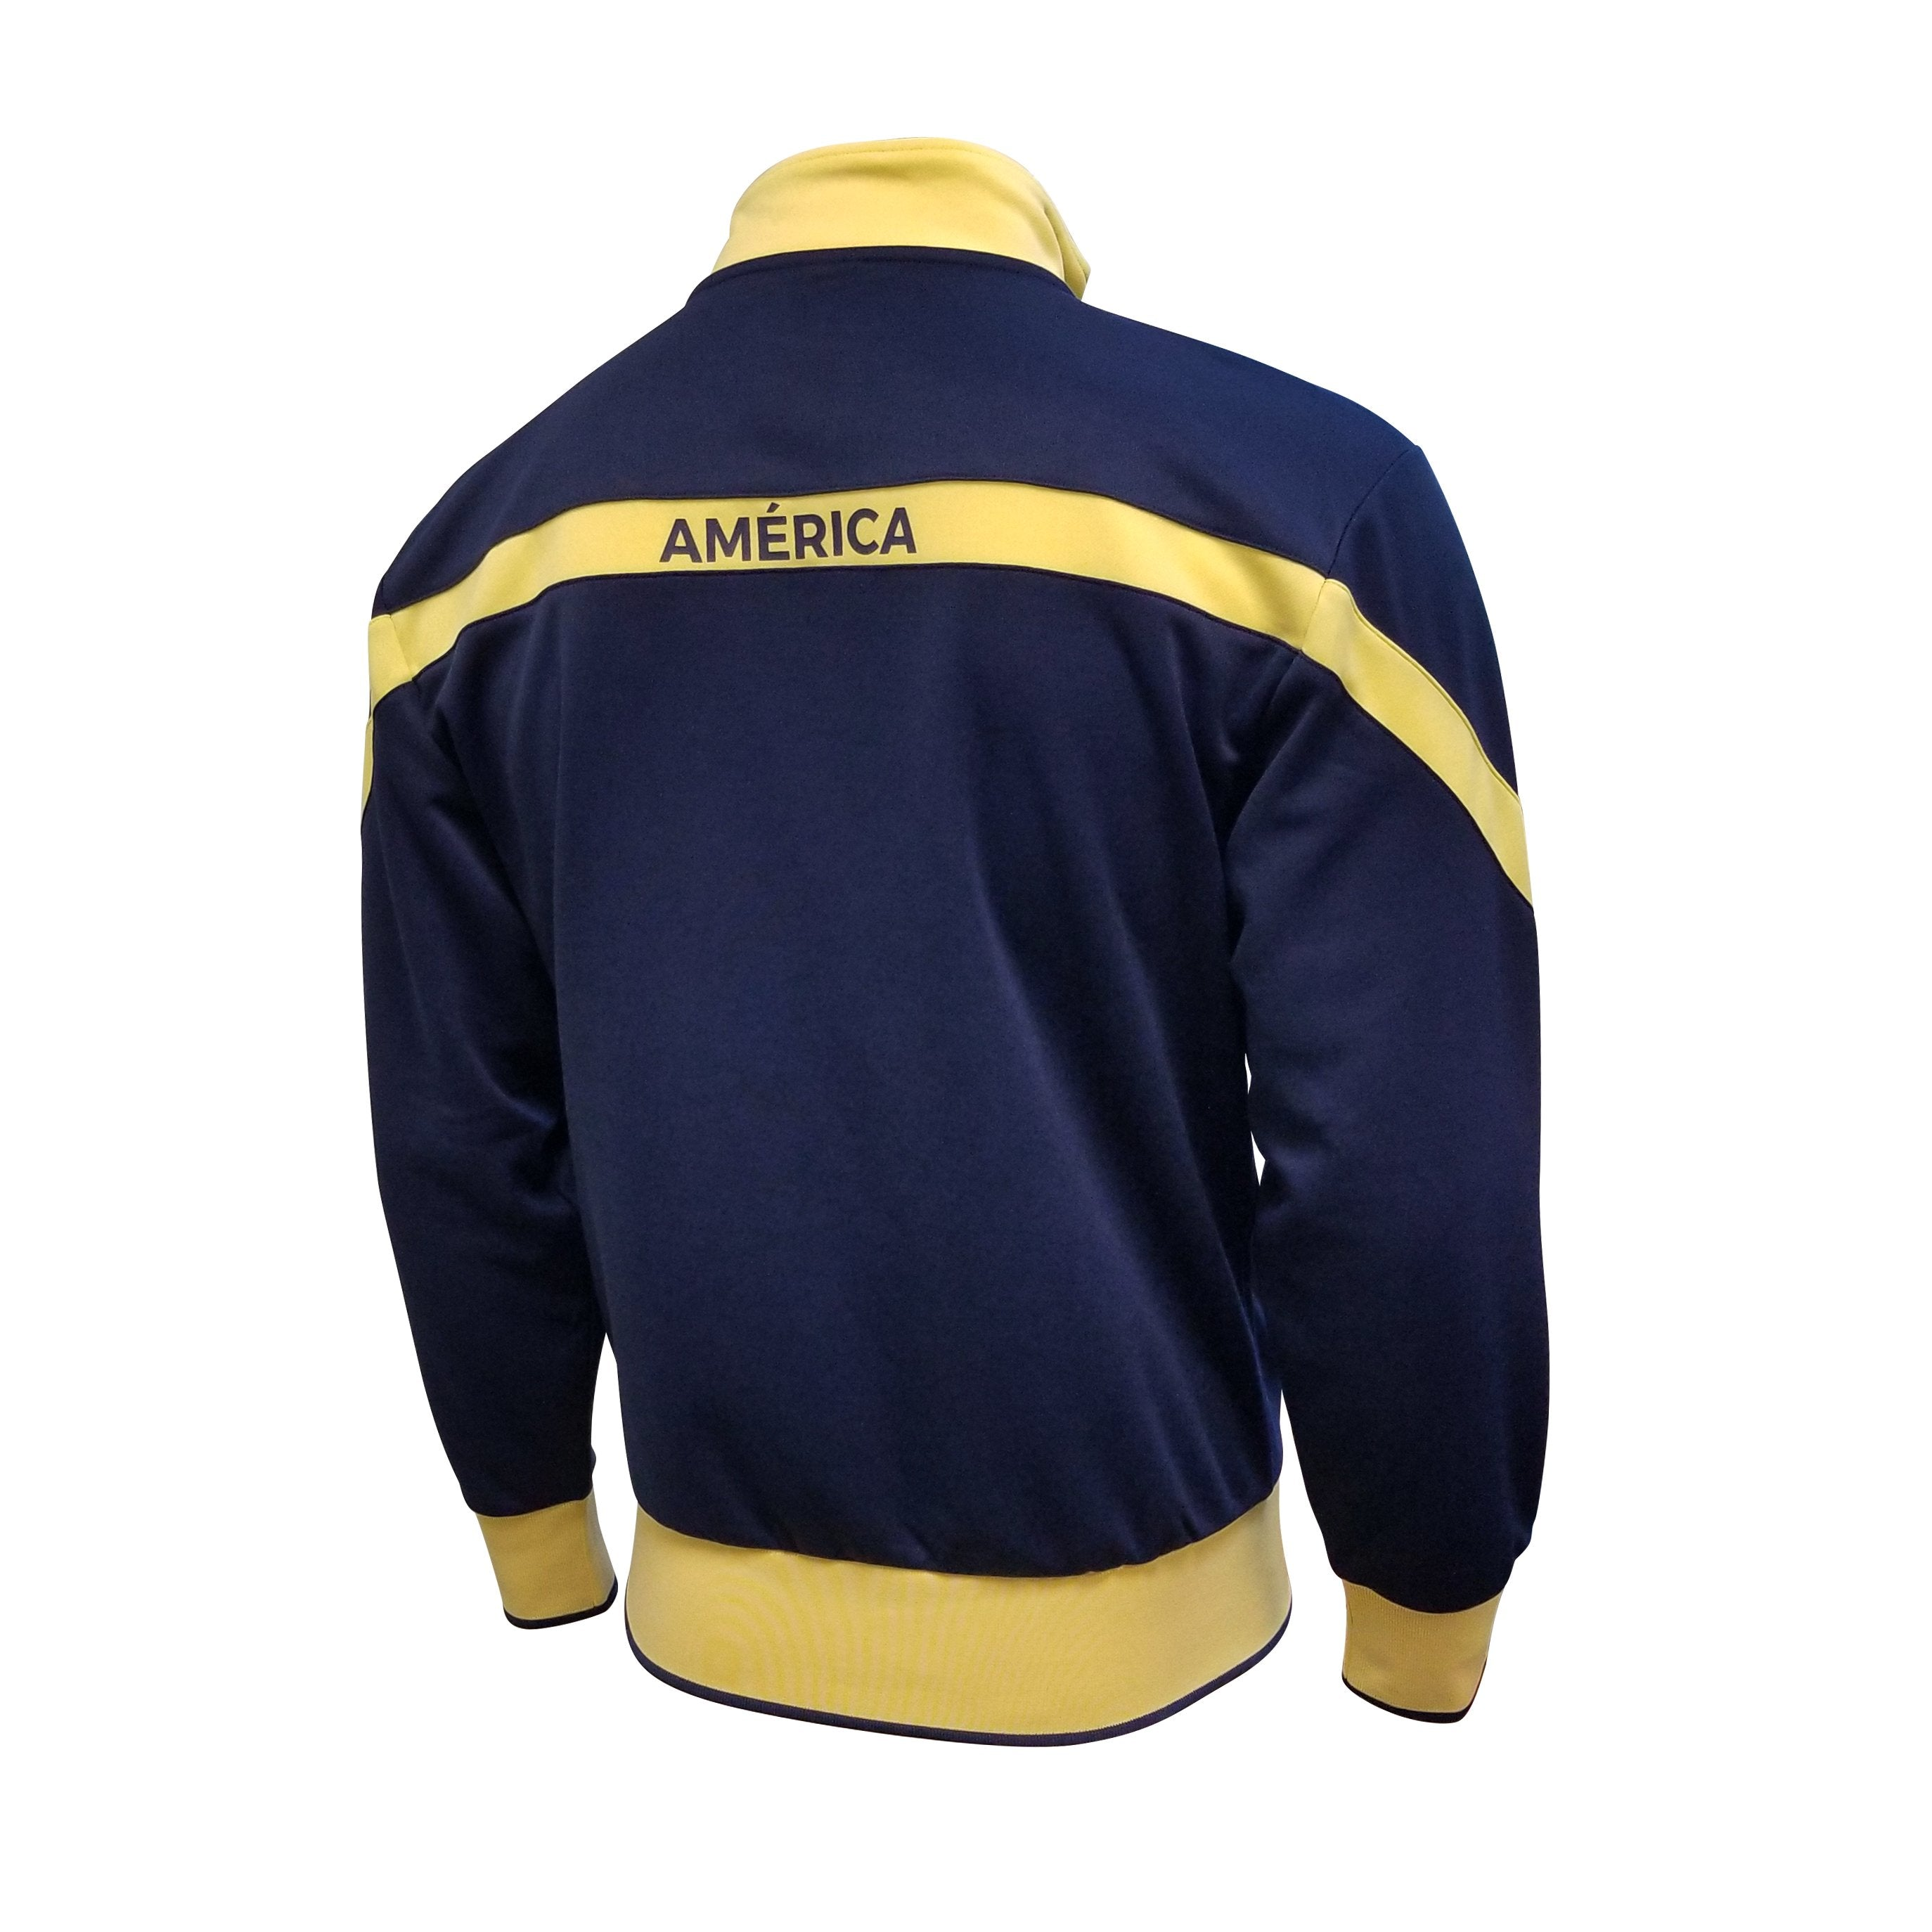 Club América Full Zip Track Jacket - Navy & Yellow